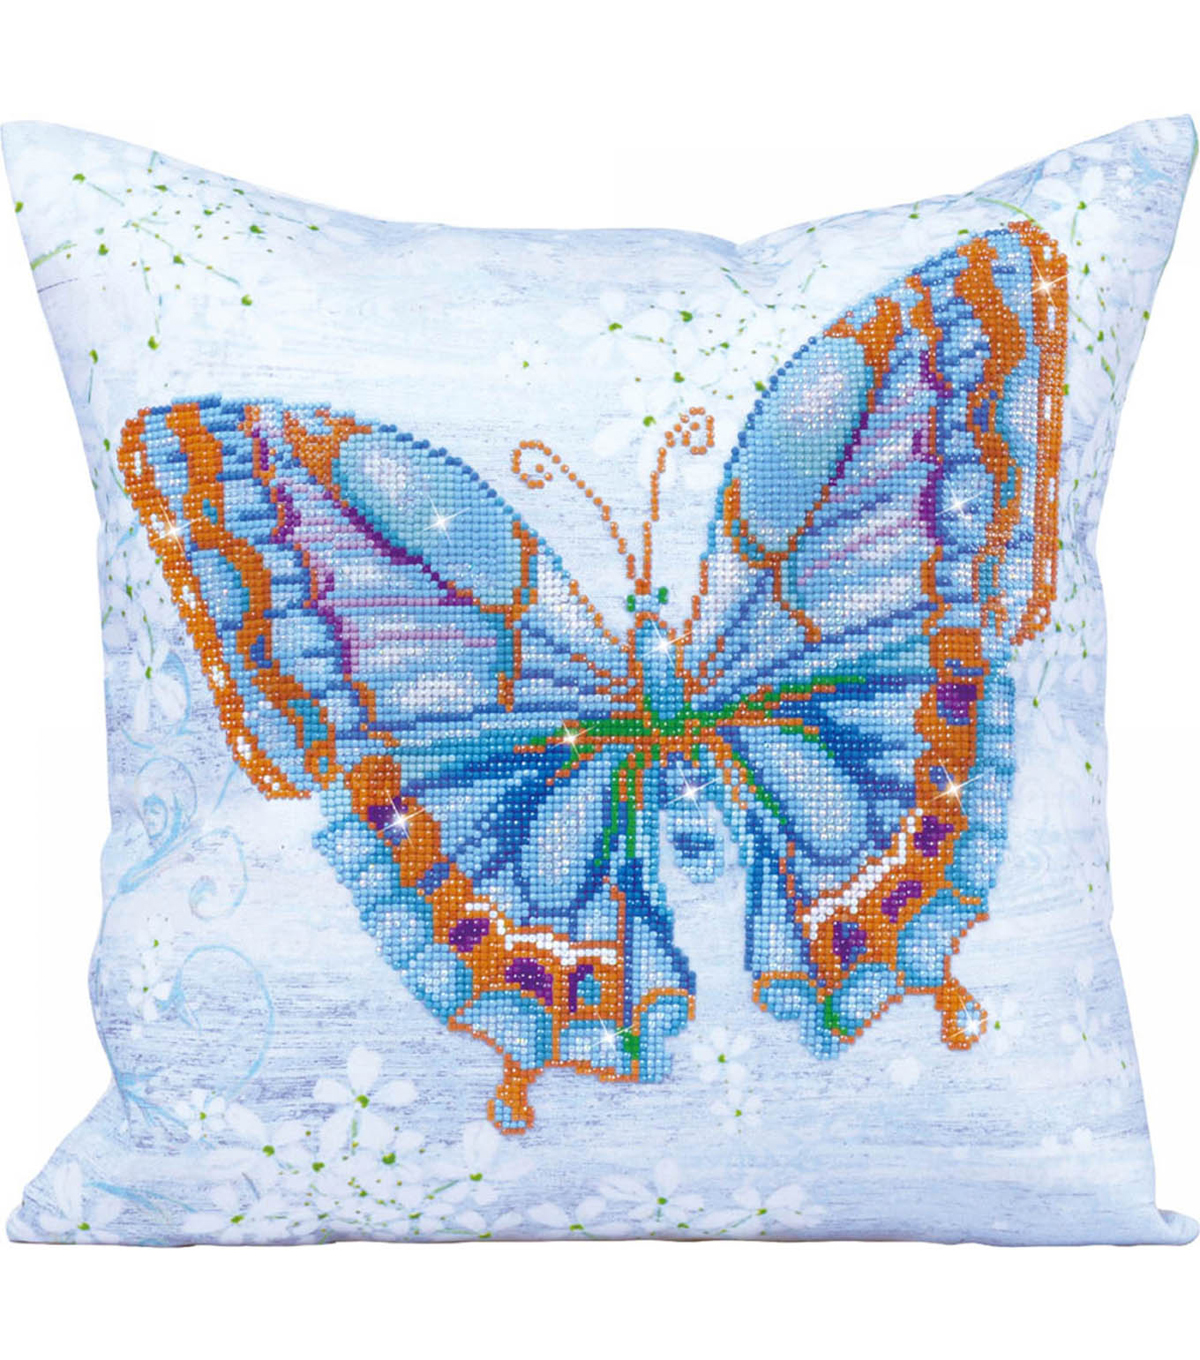 Diamond Dotz Decorative Pillow Kit-Papillon Bleu